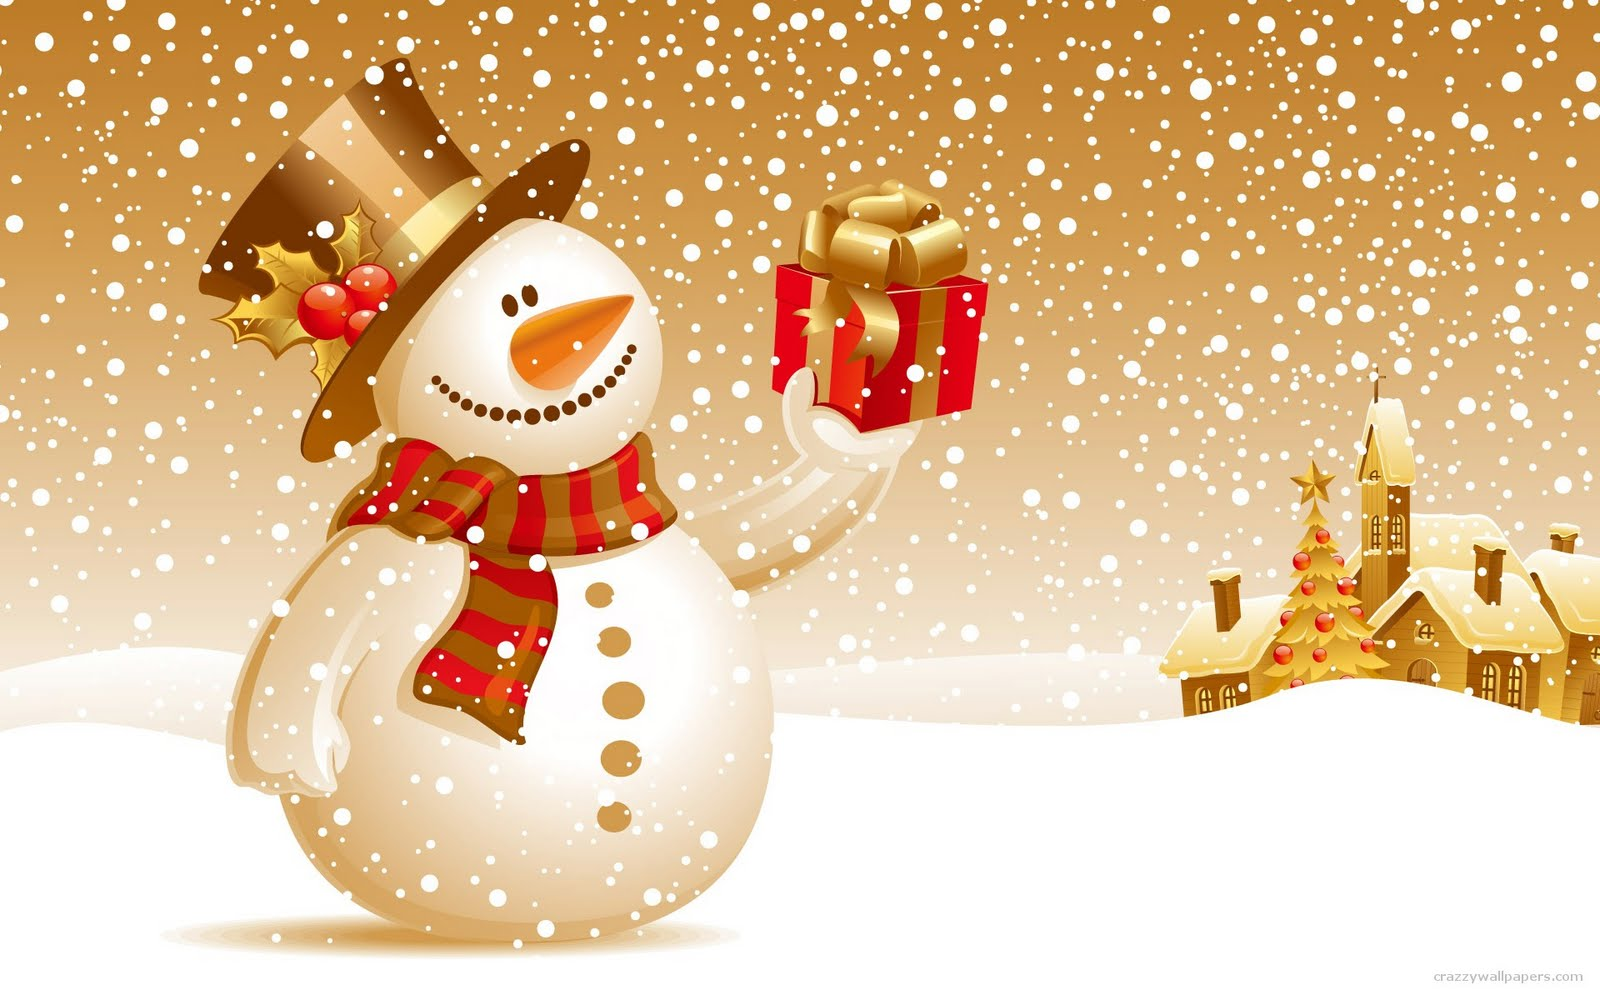 merry christmas jingle bells wallpapers - Christmas Jingle Bells Wallpaper